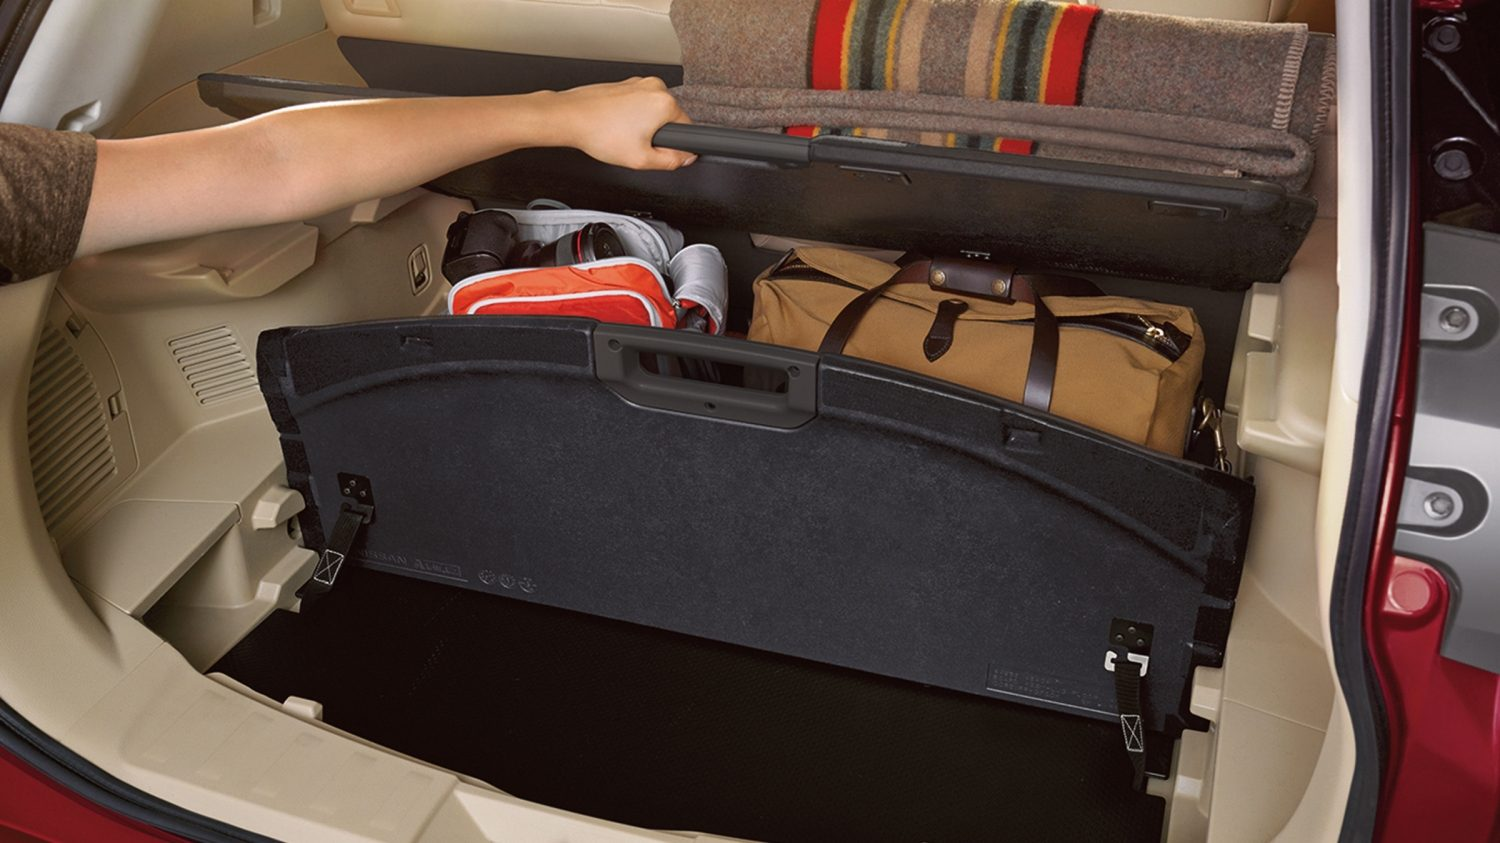 Nissan Rogue Interior Divide-N-Hide Cargo System showing shelf configuration